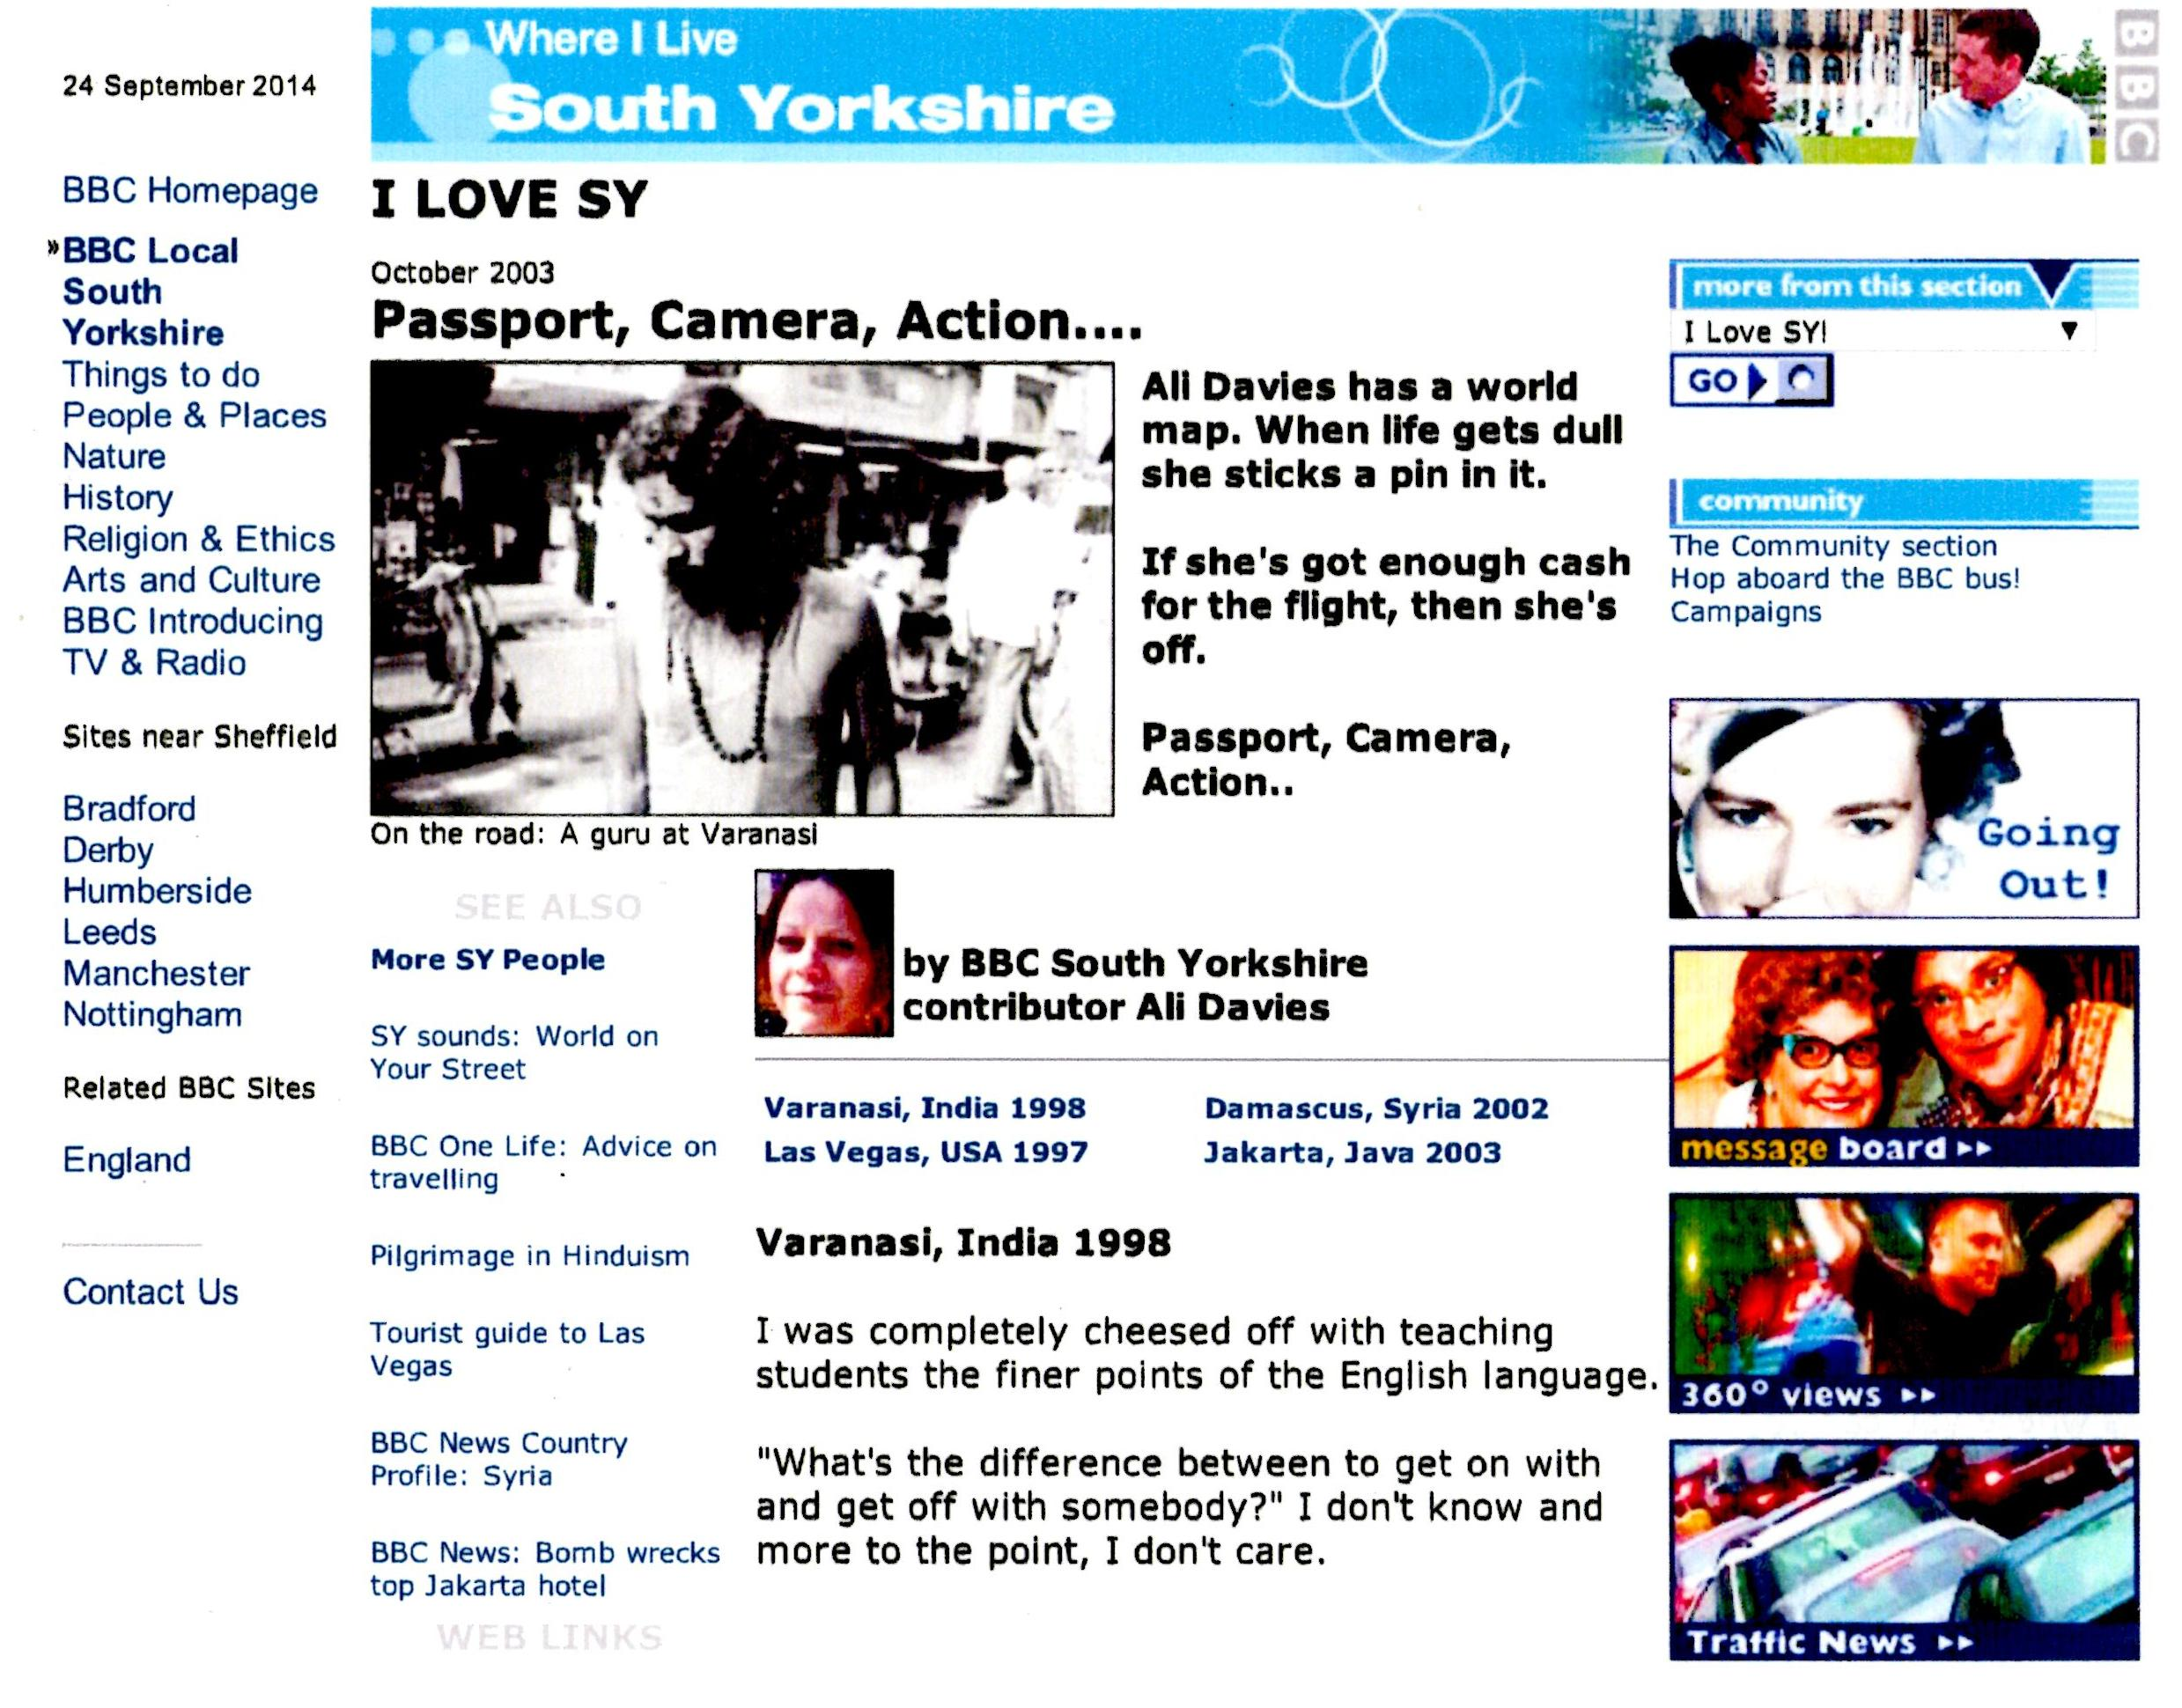 Passport Camera Action page from BBC South Yorkshire website